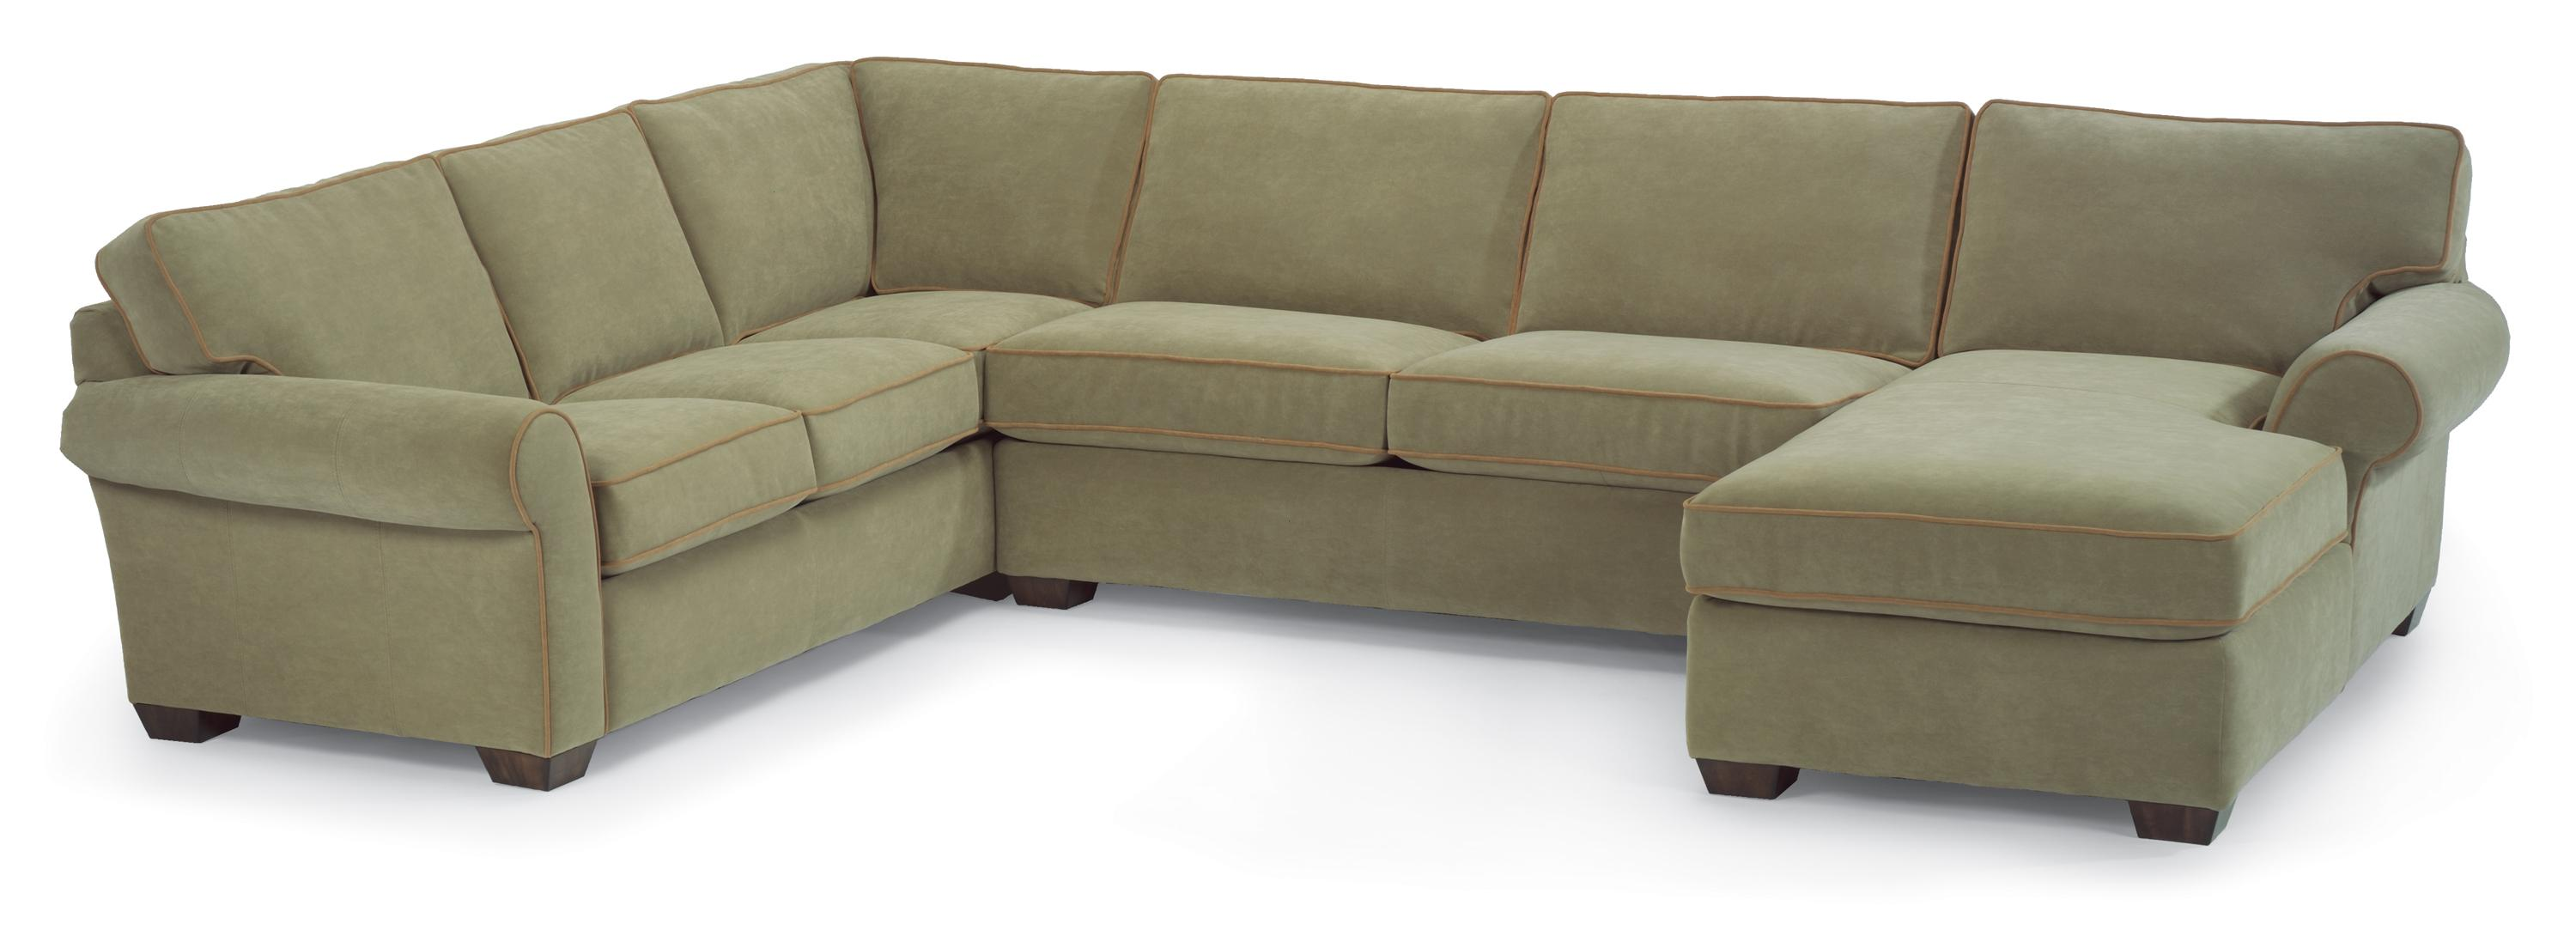 Flexsteel vail stationary sectional sofa with right side for Flexsteel sectional sofa with chaise